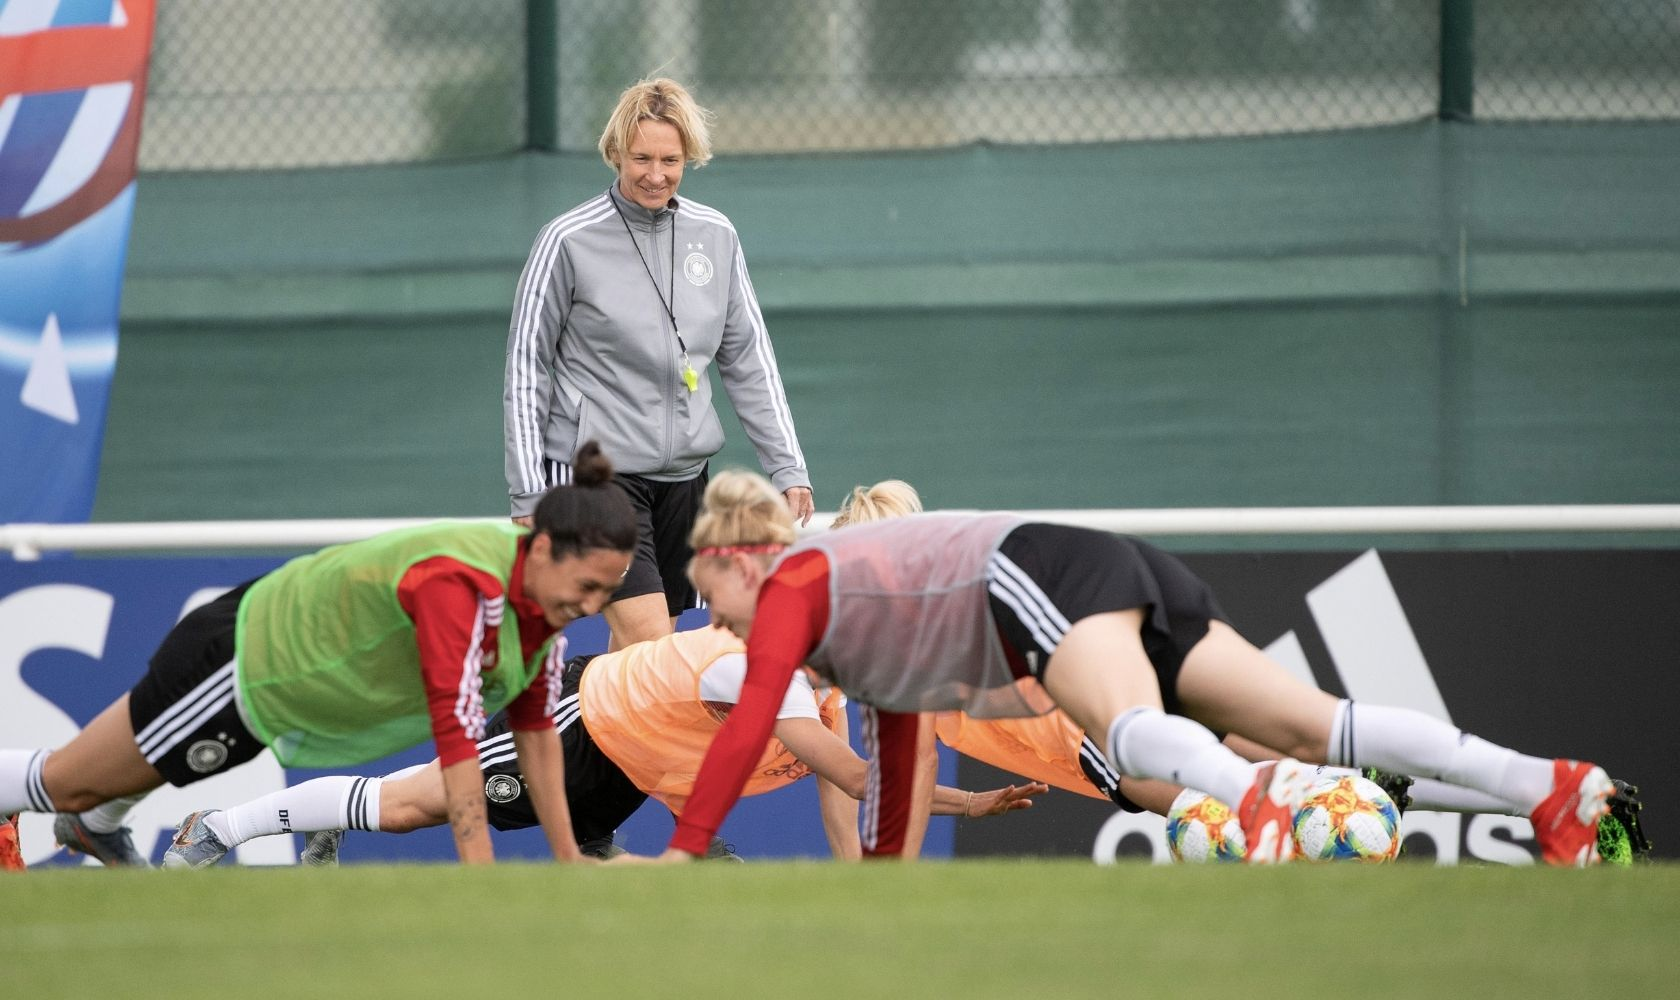 Five tips for coaches to bring a Balance is Better philosophy into their coaching